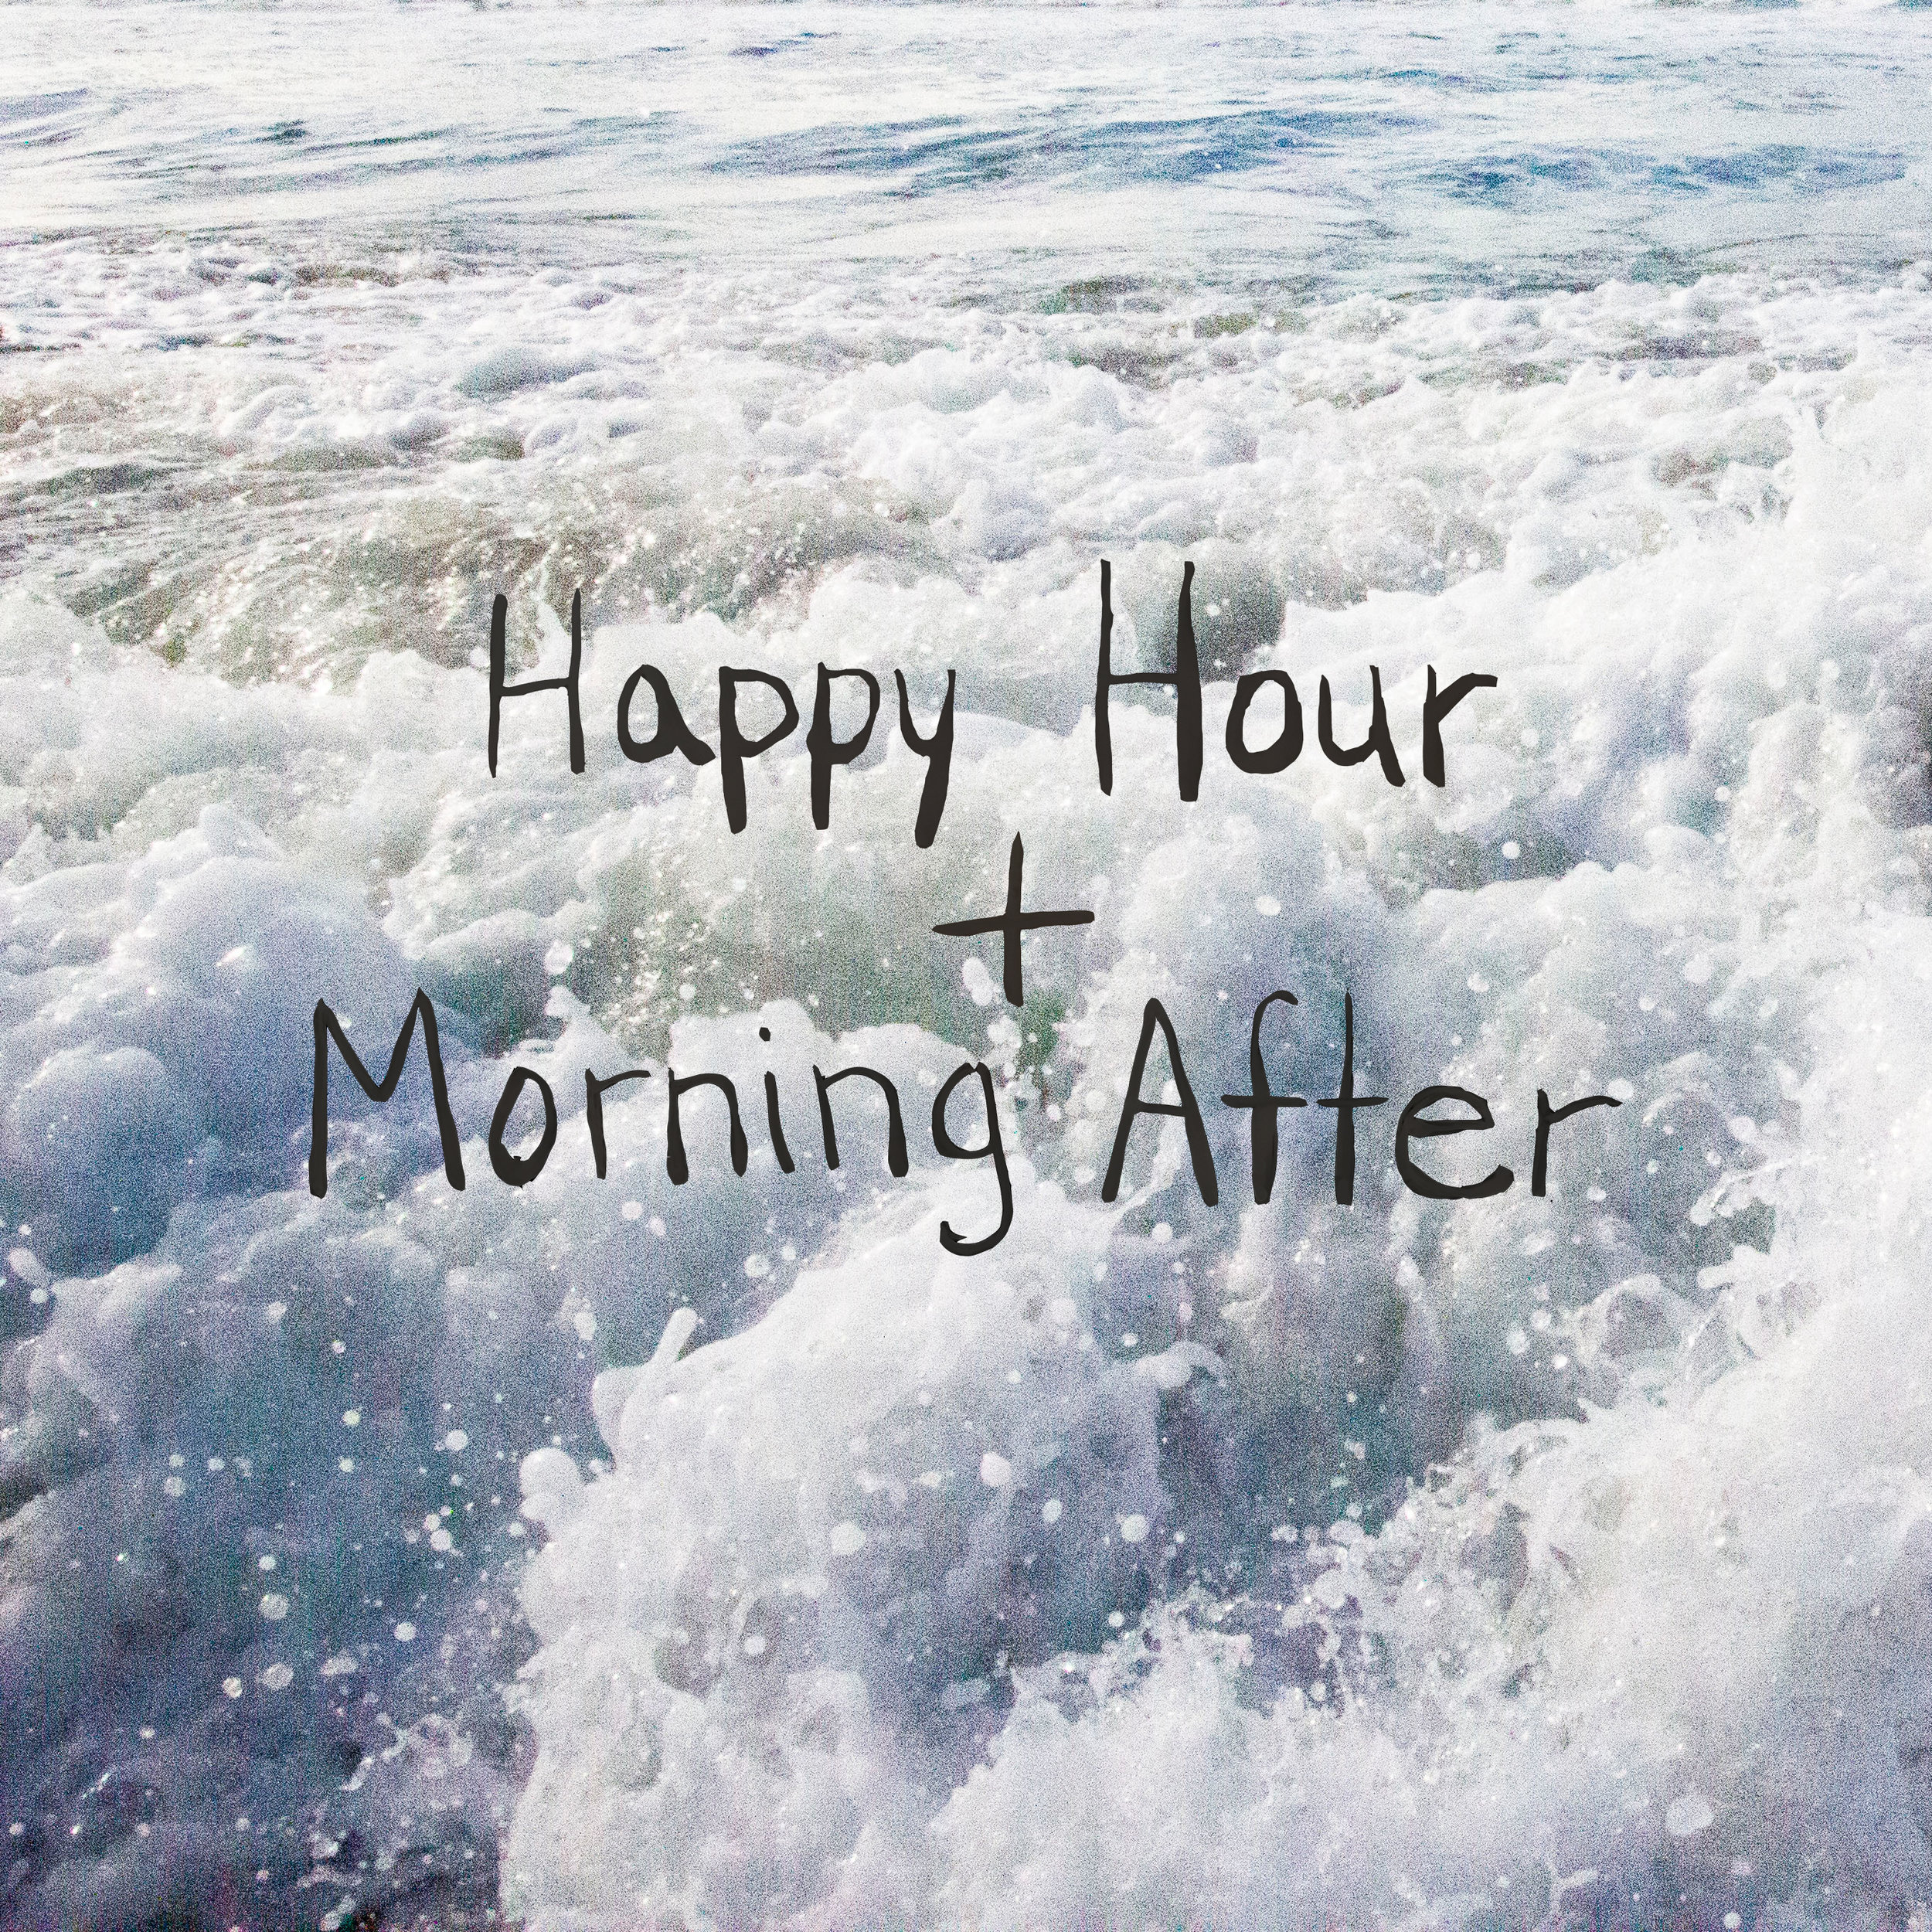 Happy Hour Morning After - Kaylyn Rogers